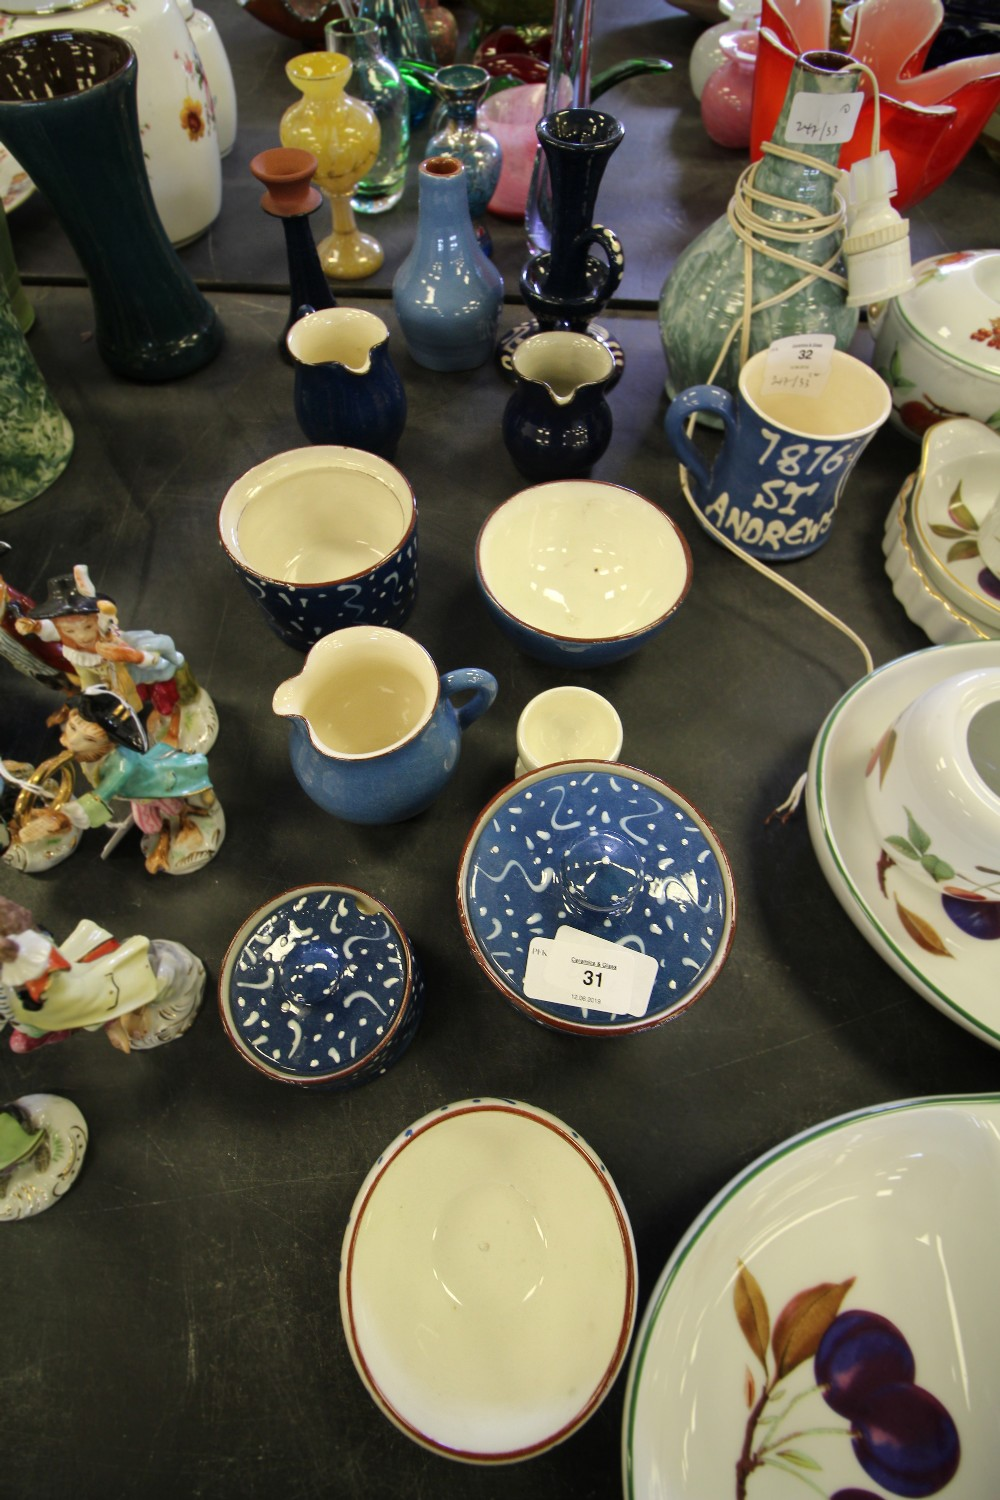 Lot 31 - Quantity of Wetheriggs pottery wares - blue slip ware etc